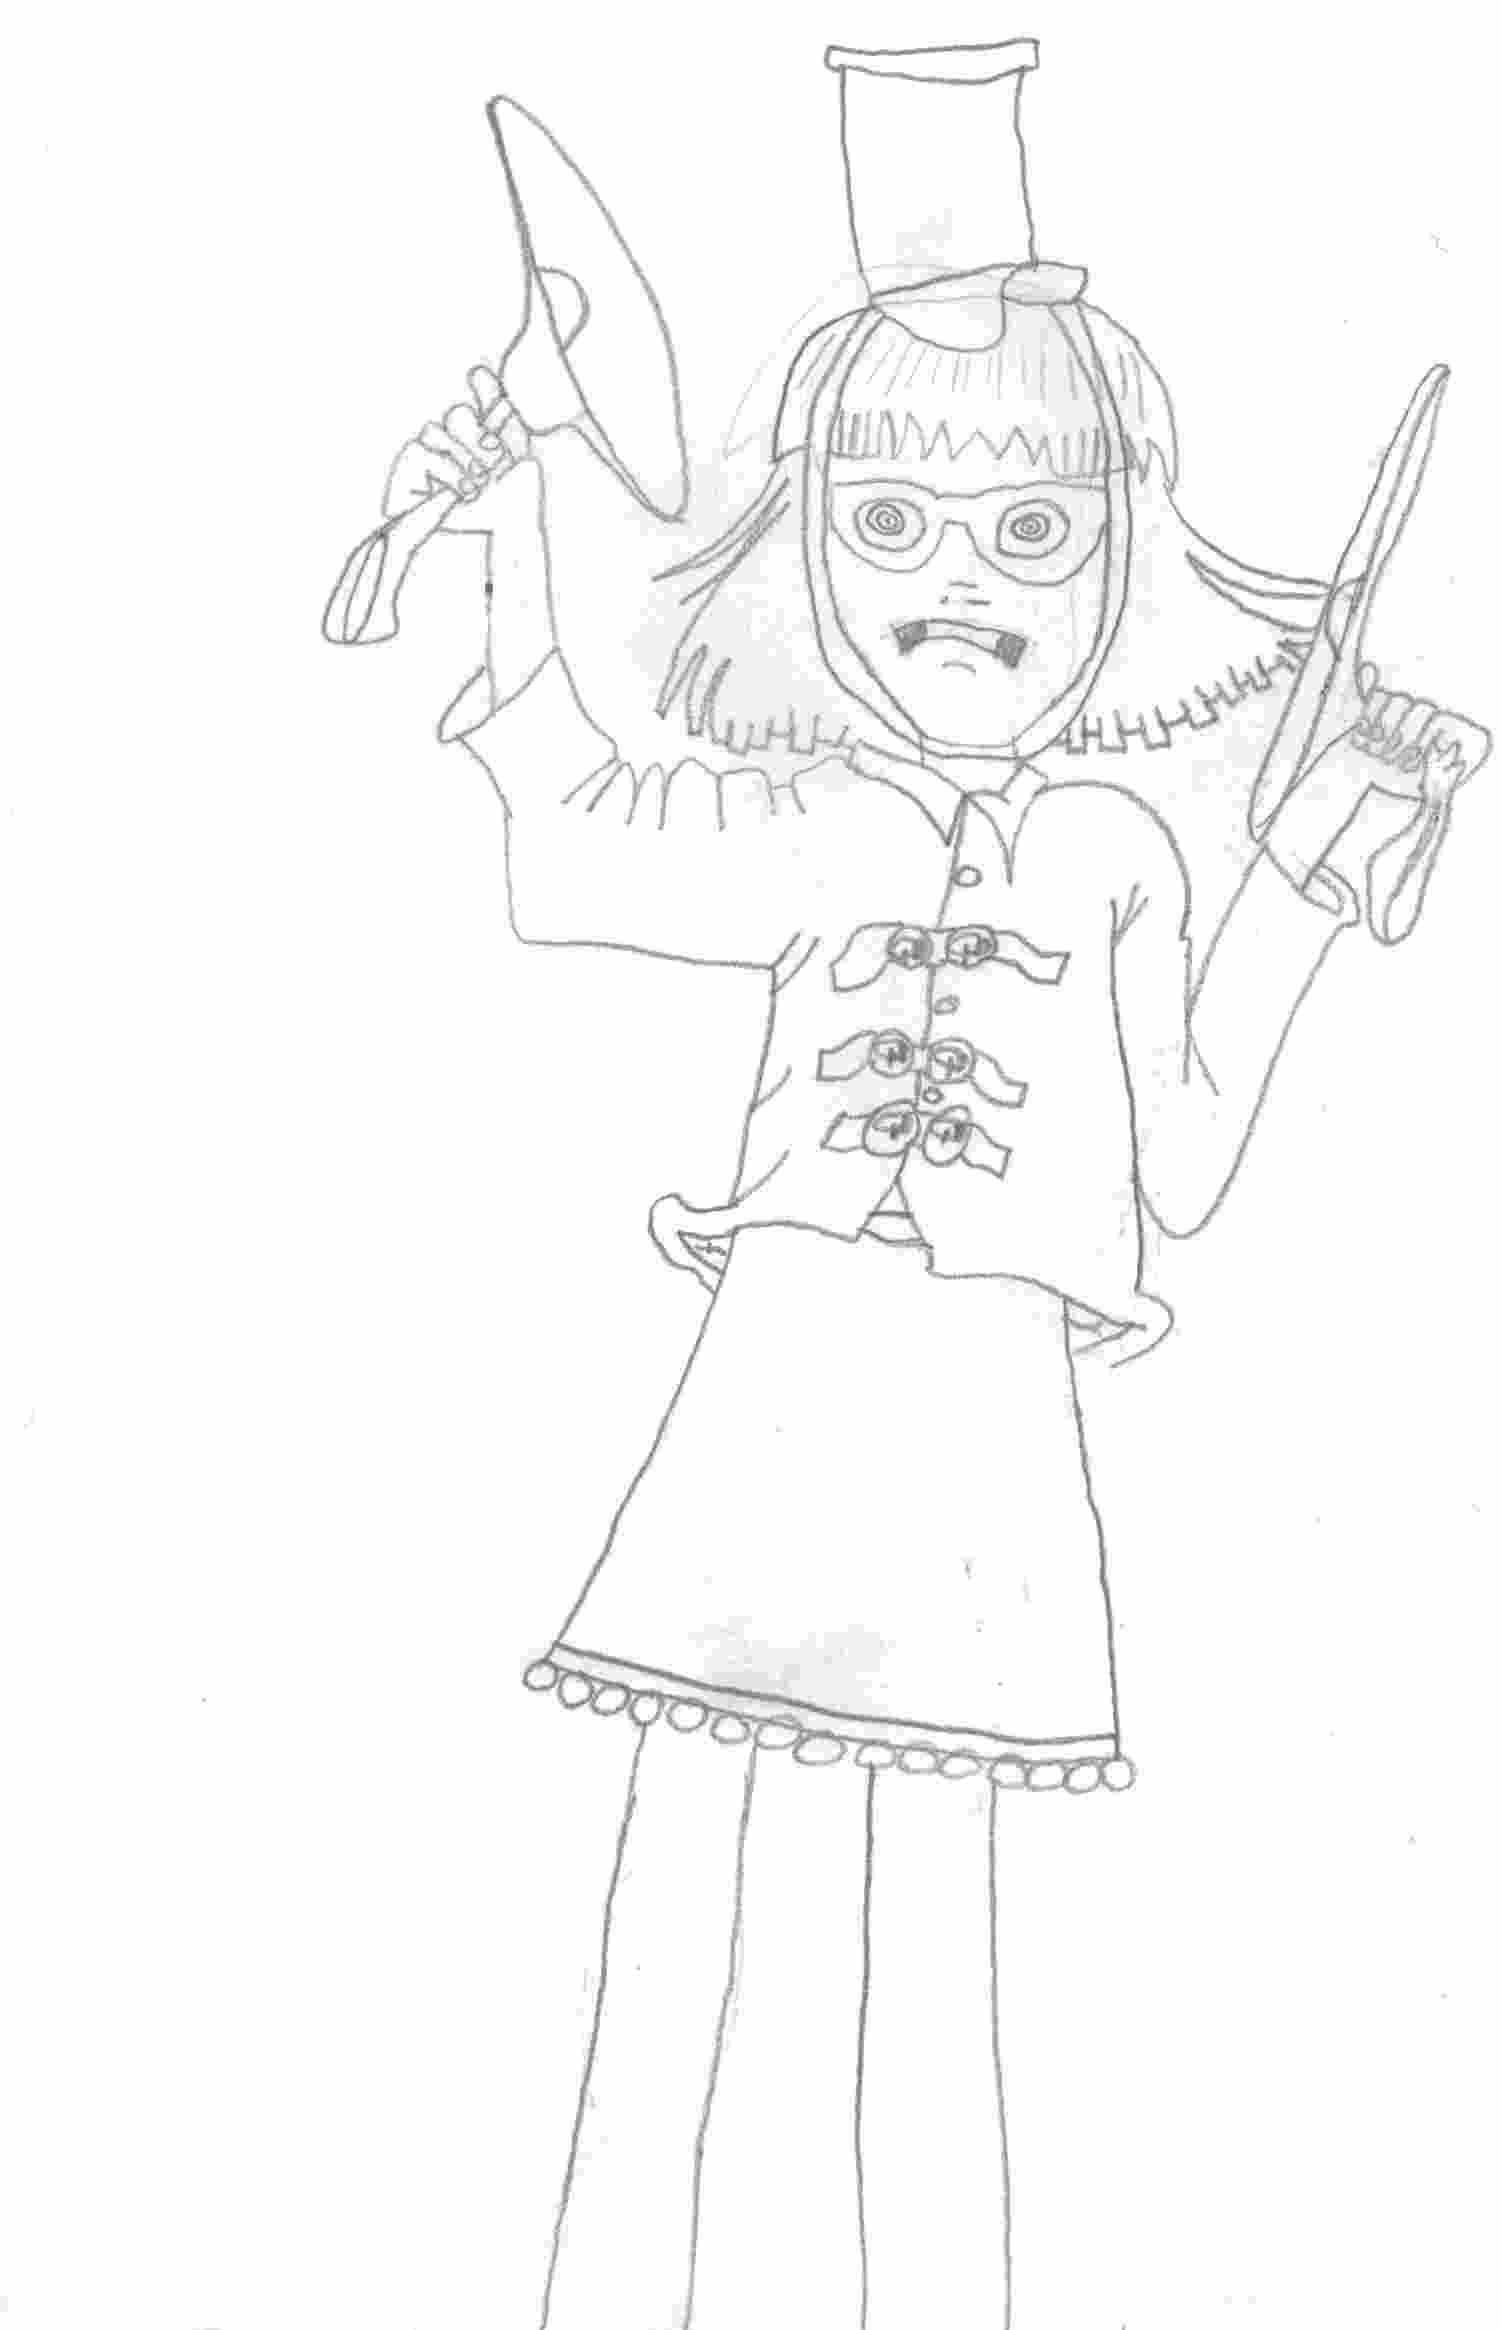 Junie B Jones Free Coloring Pages In 2020 Abc Coloring Pages Coloring Pages Abc Coloring